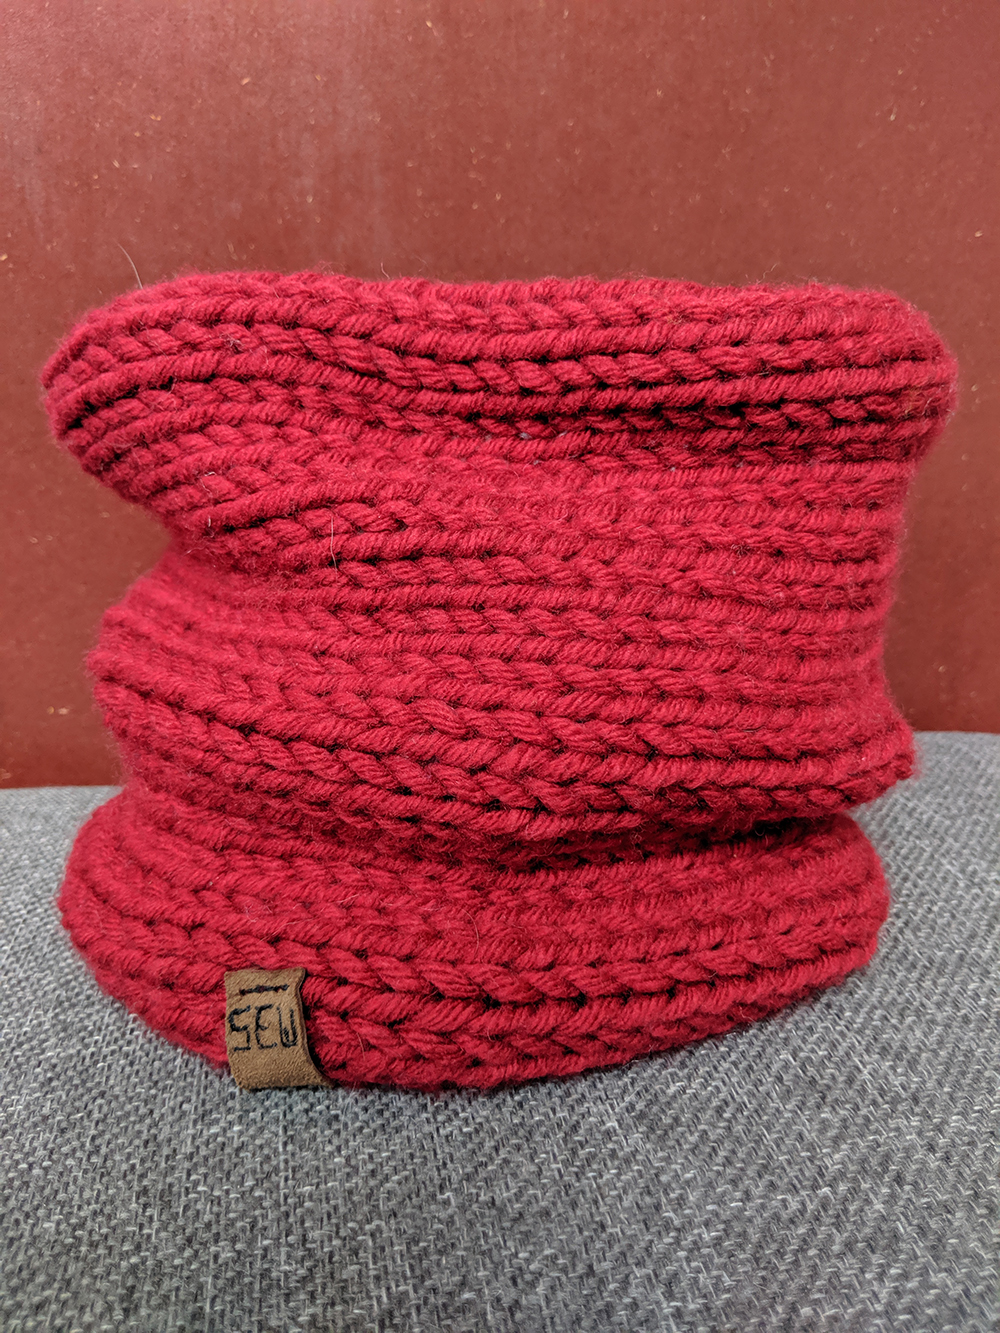 Beginners knitting workshop - full day course